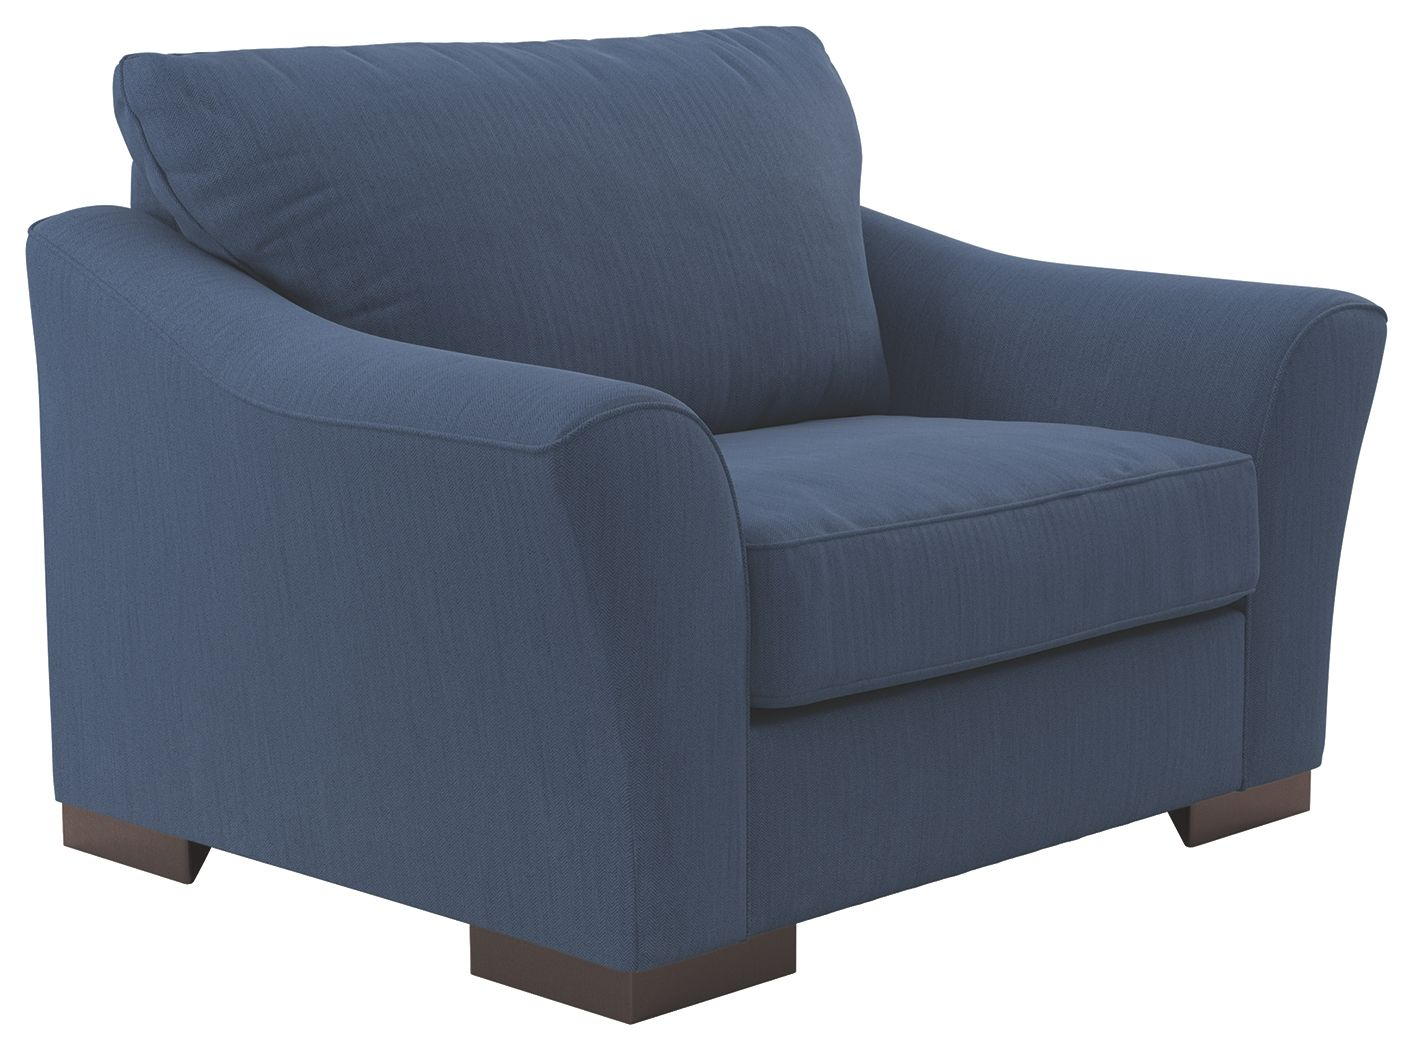 Bantry Nuvella Oversized Chair Indigo In 2020 Oversized Chair